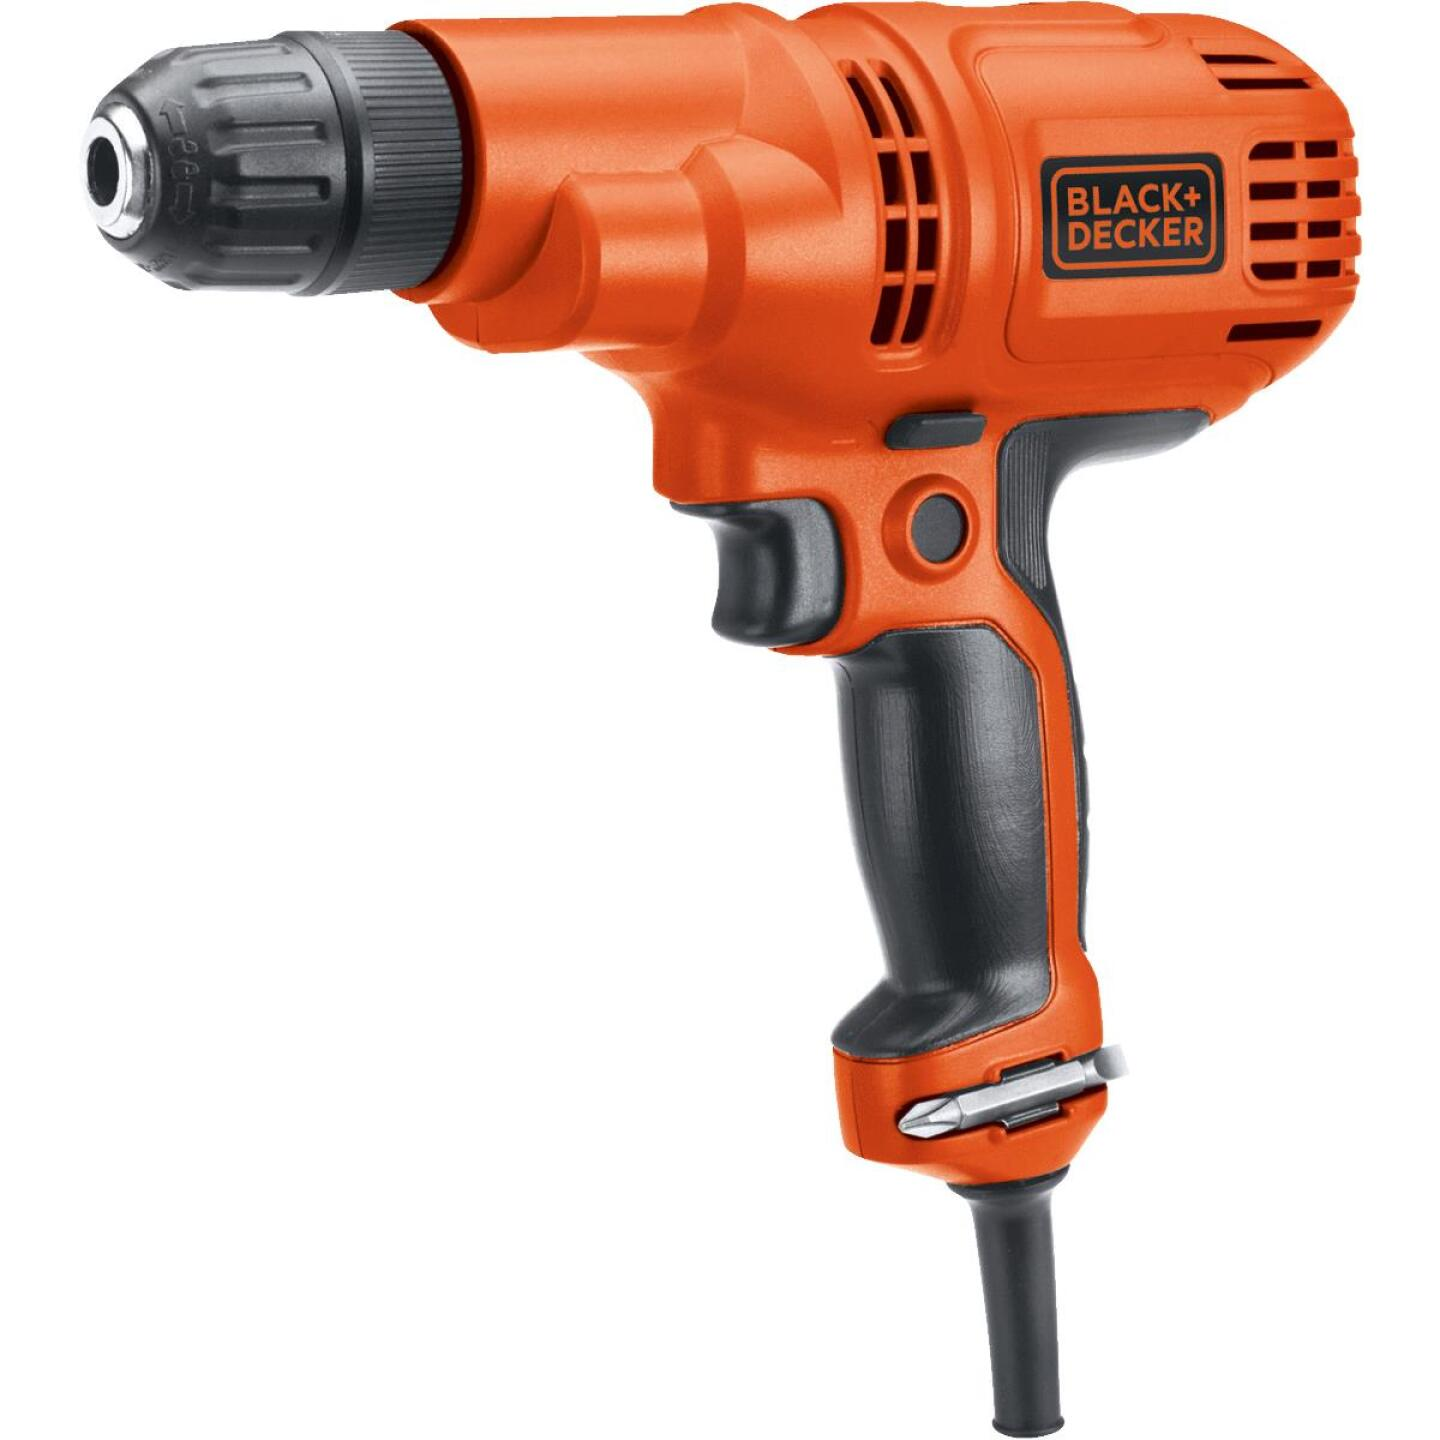 Black & Decker 3/8 In. 5.2-Amp Keyless Electric Drill/Driver Image 1